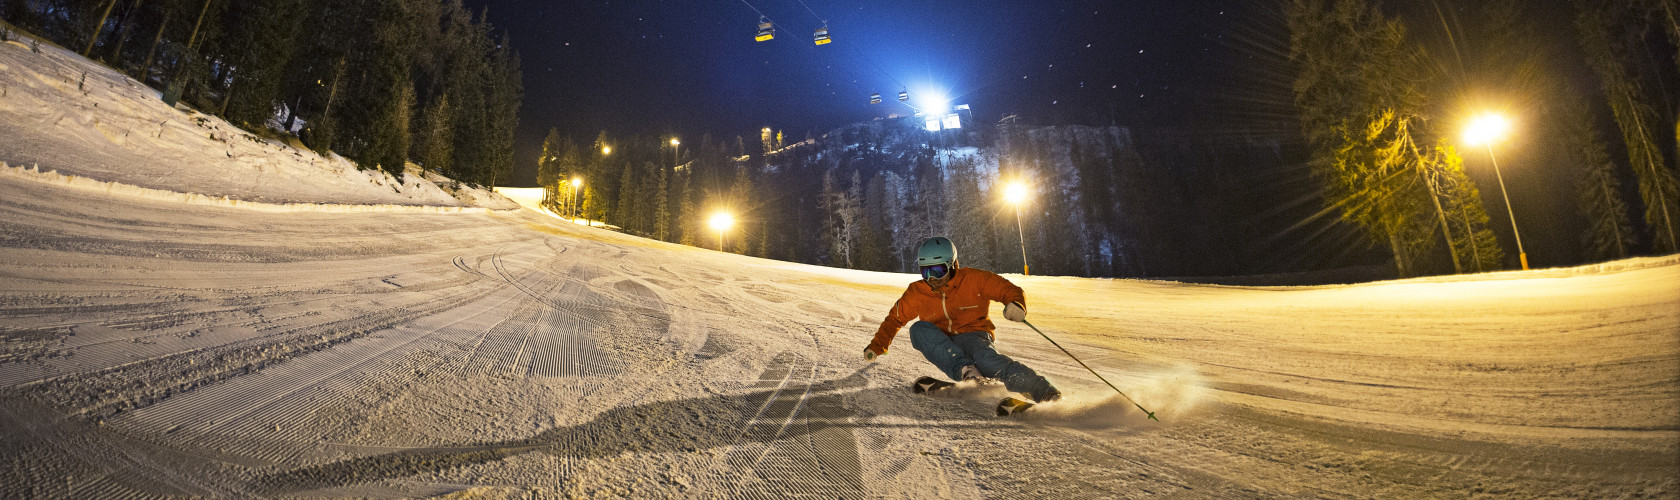 Schladming family holiday by night